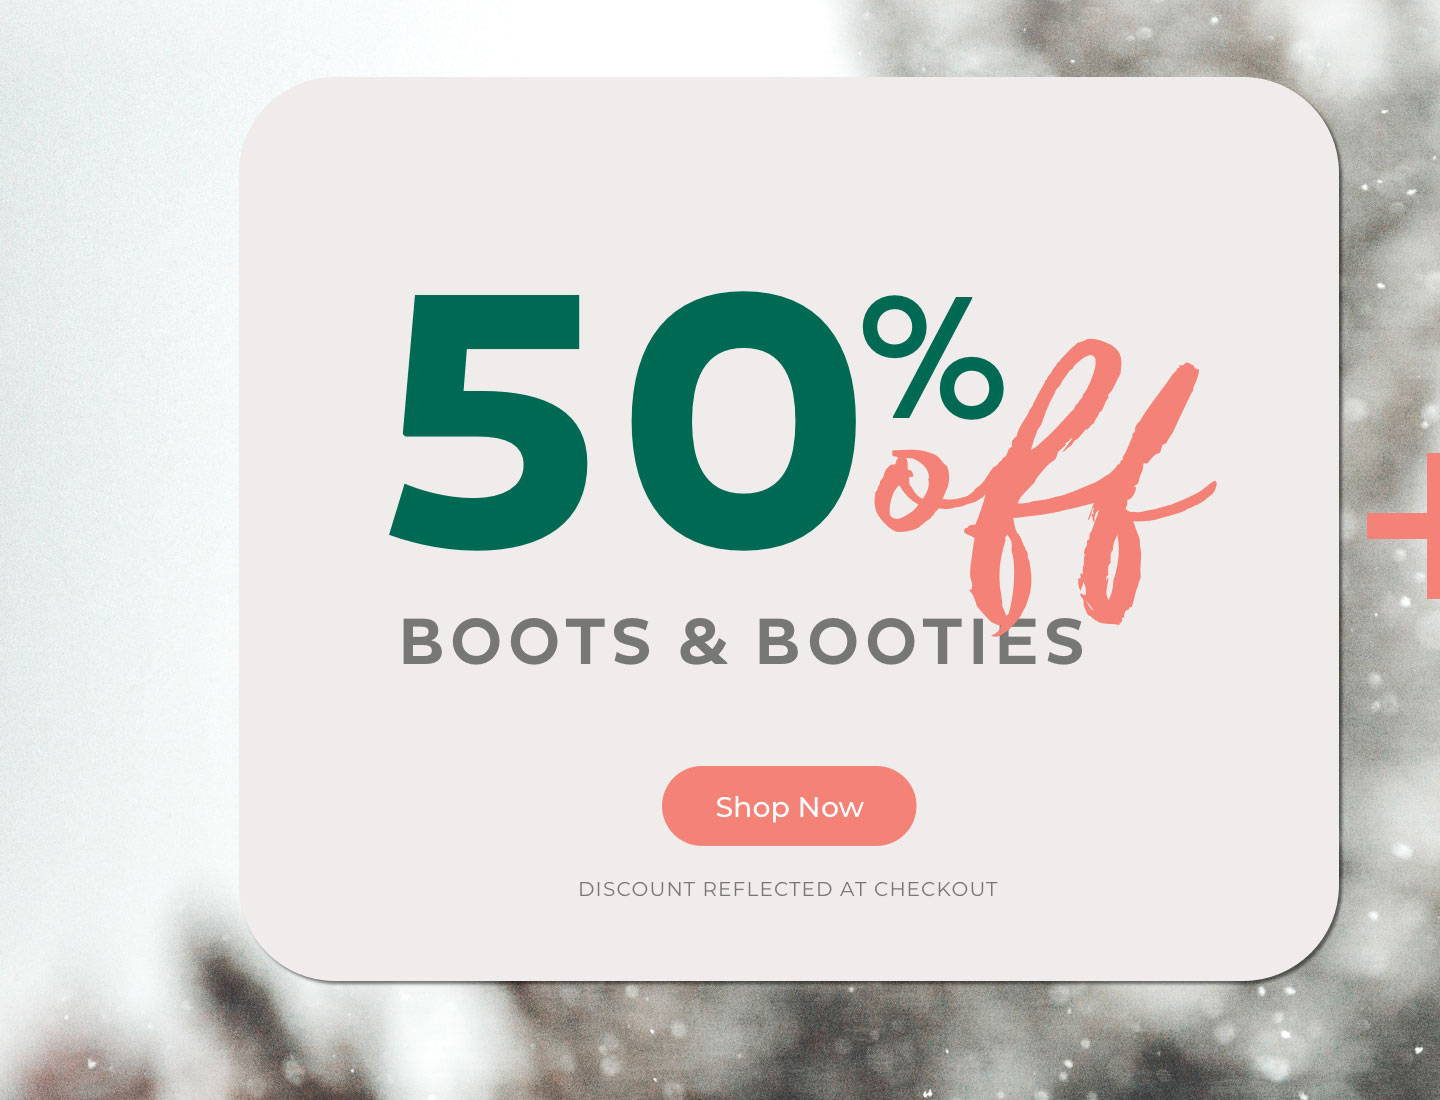 50% off Boots & Booties